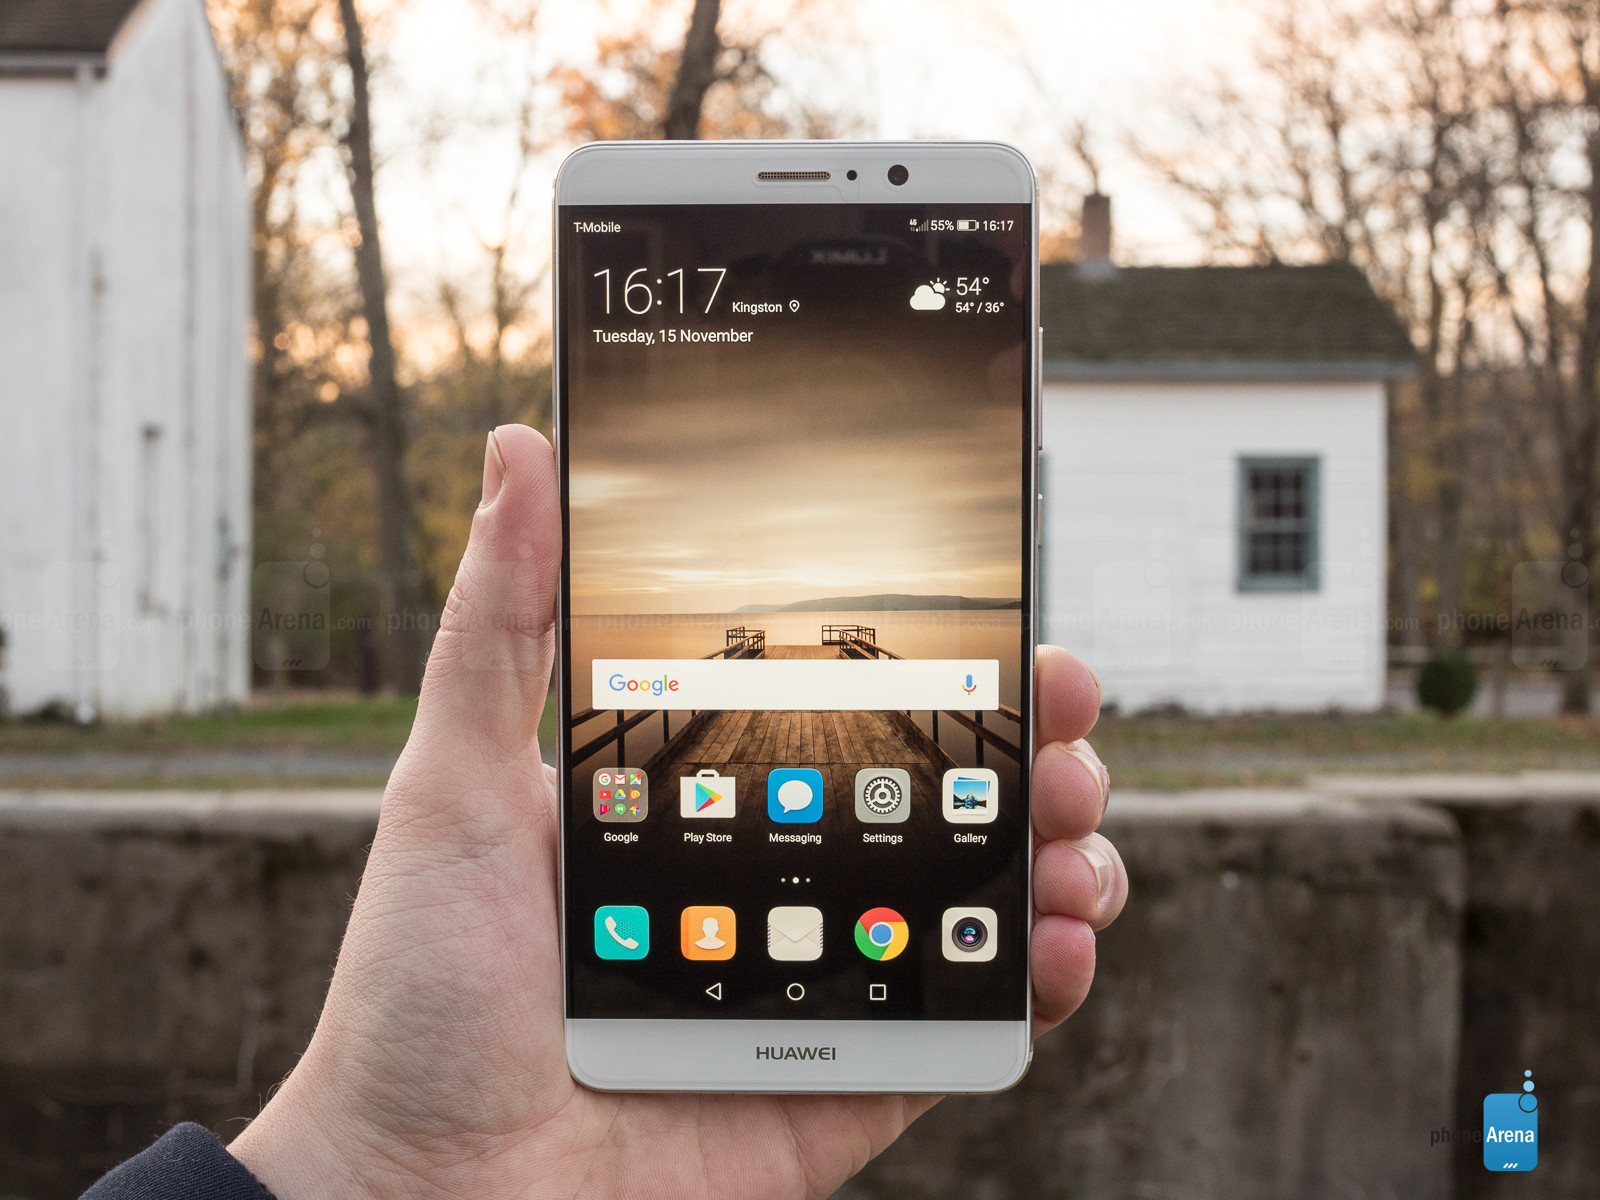 huawei-mate-9-review-005